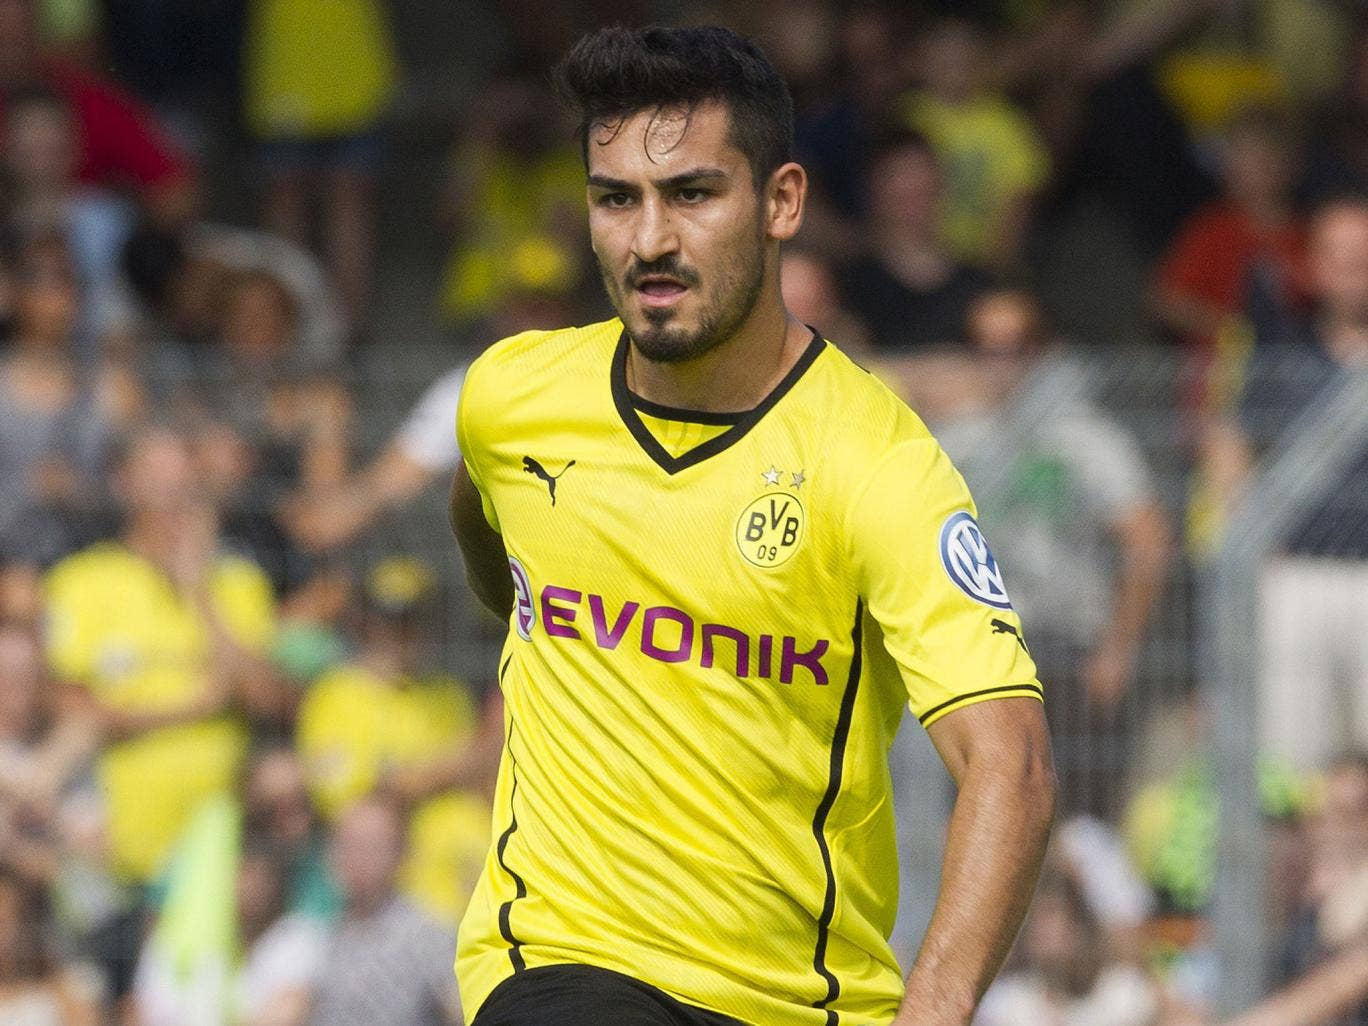 Ilkay Gundogan could be the answer to Manchester United's midfield problems